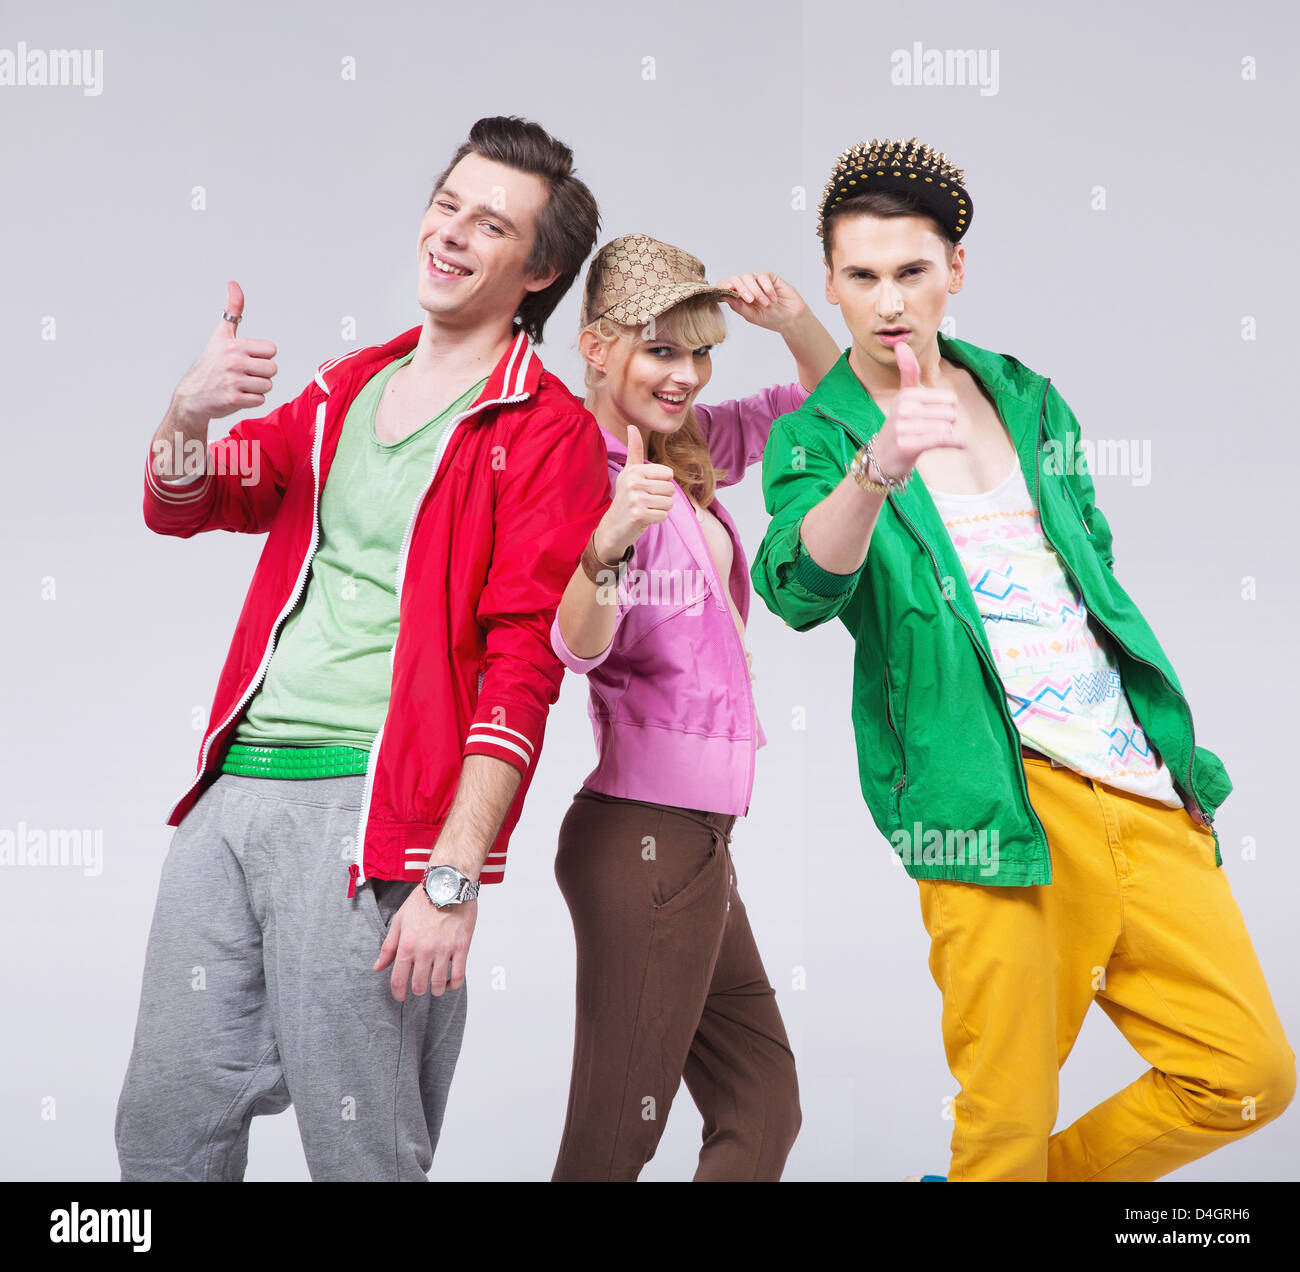 Three young friends in optimistic pose - Stock Image